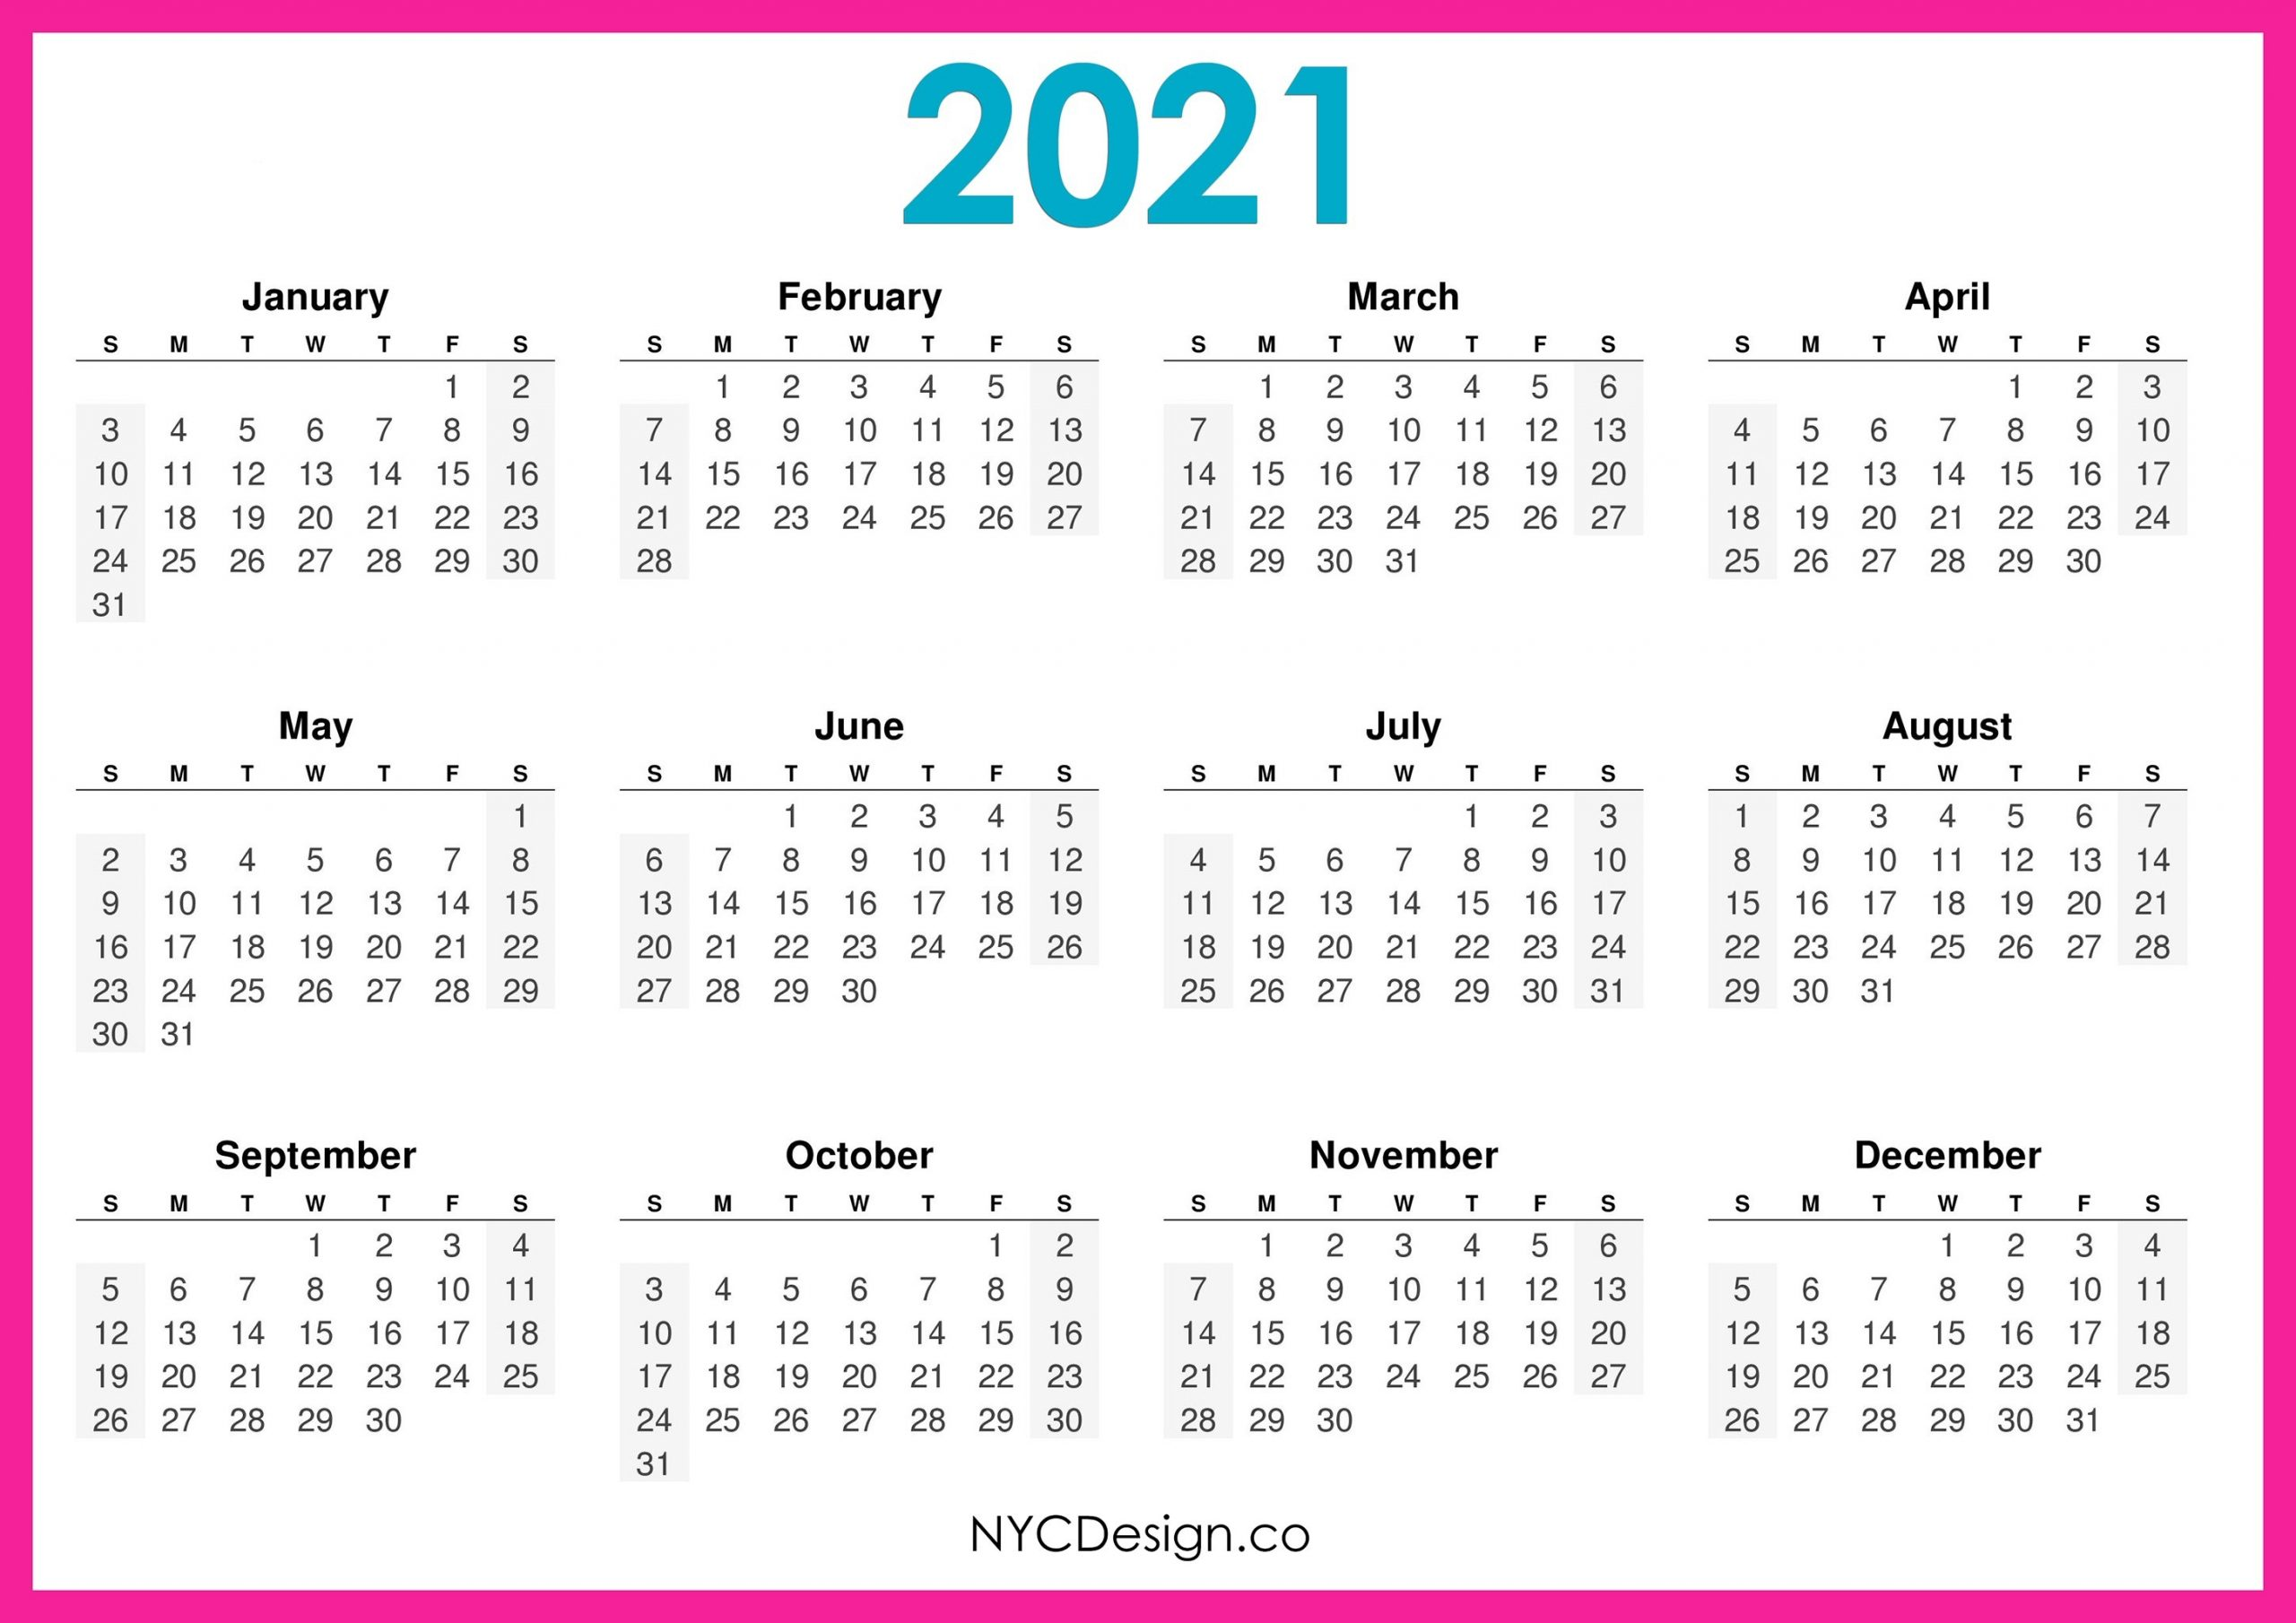 Free 2021 Yearly Calender Template / 12 Month Colorful Calendar For 2021 - Free Printable inside 2021 Printable Full Year Calendar